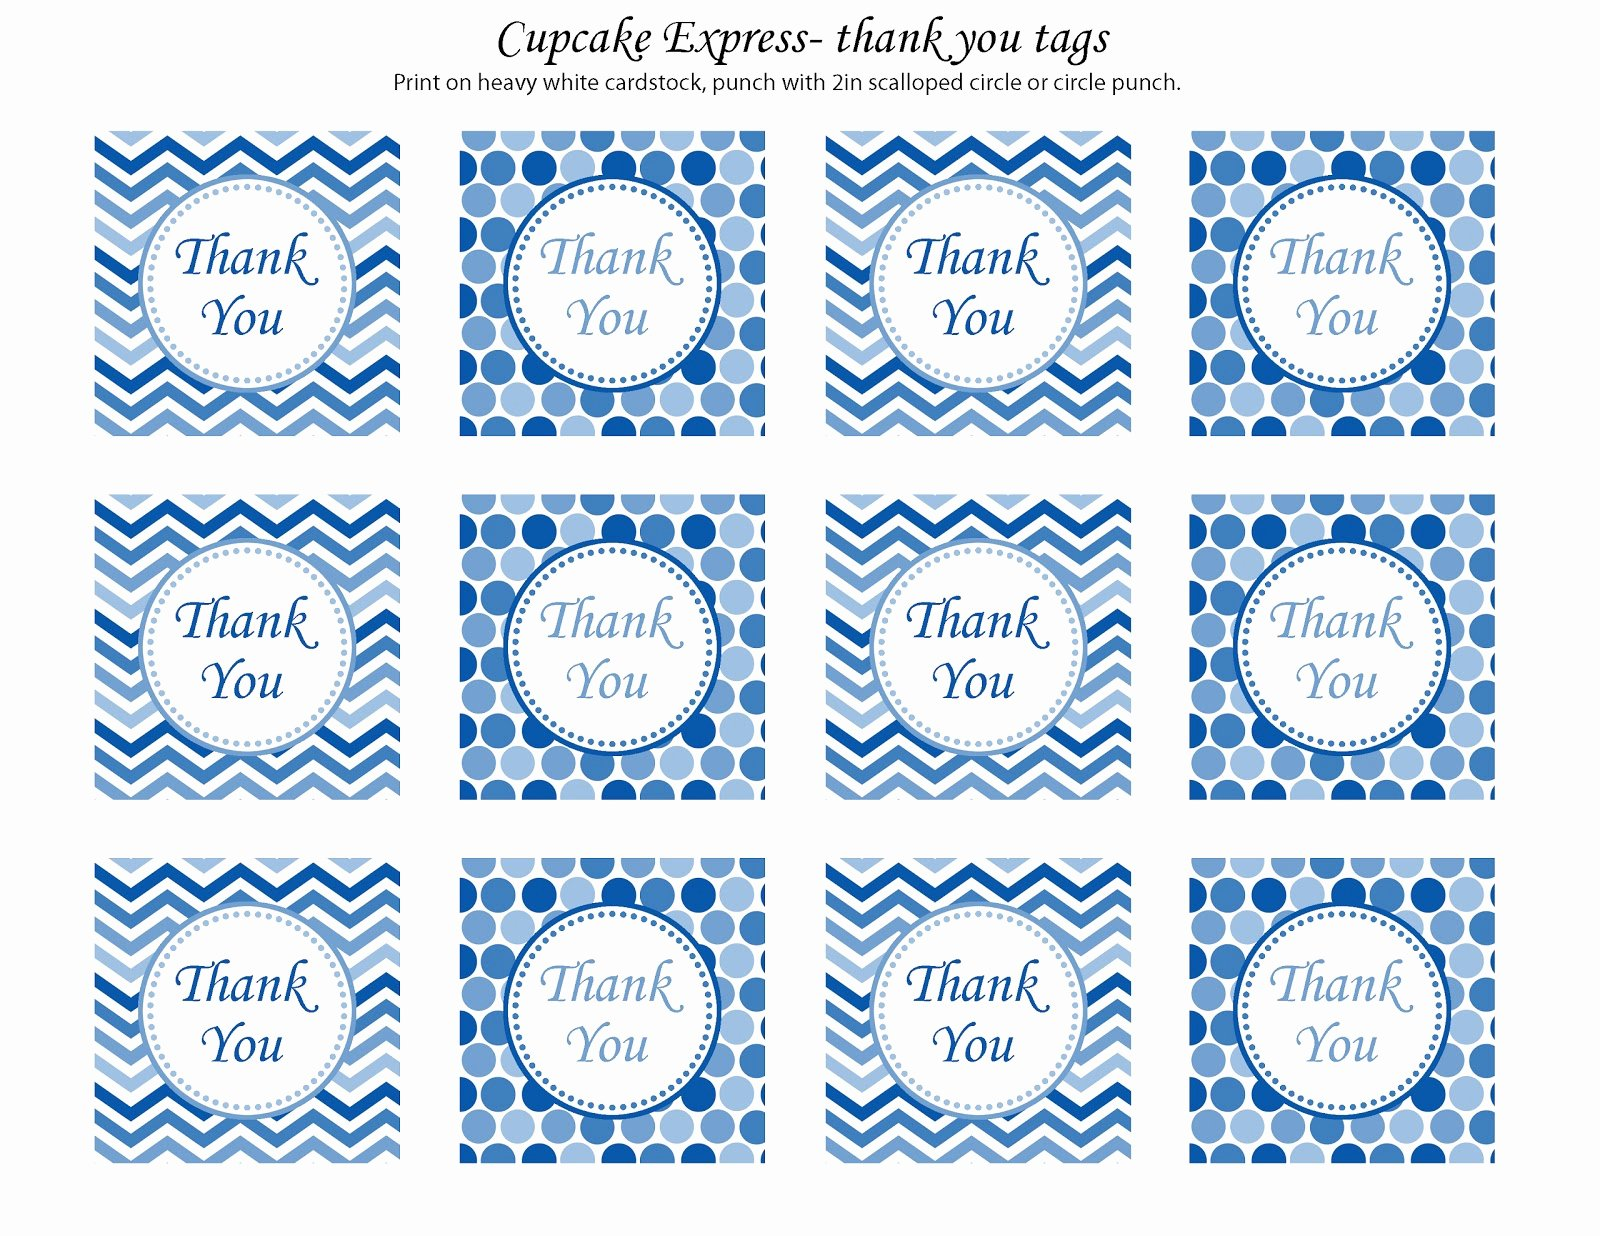 Printable Thank You Tags Awesome Thanks so Much to All My Fabulous Fans